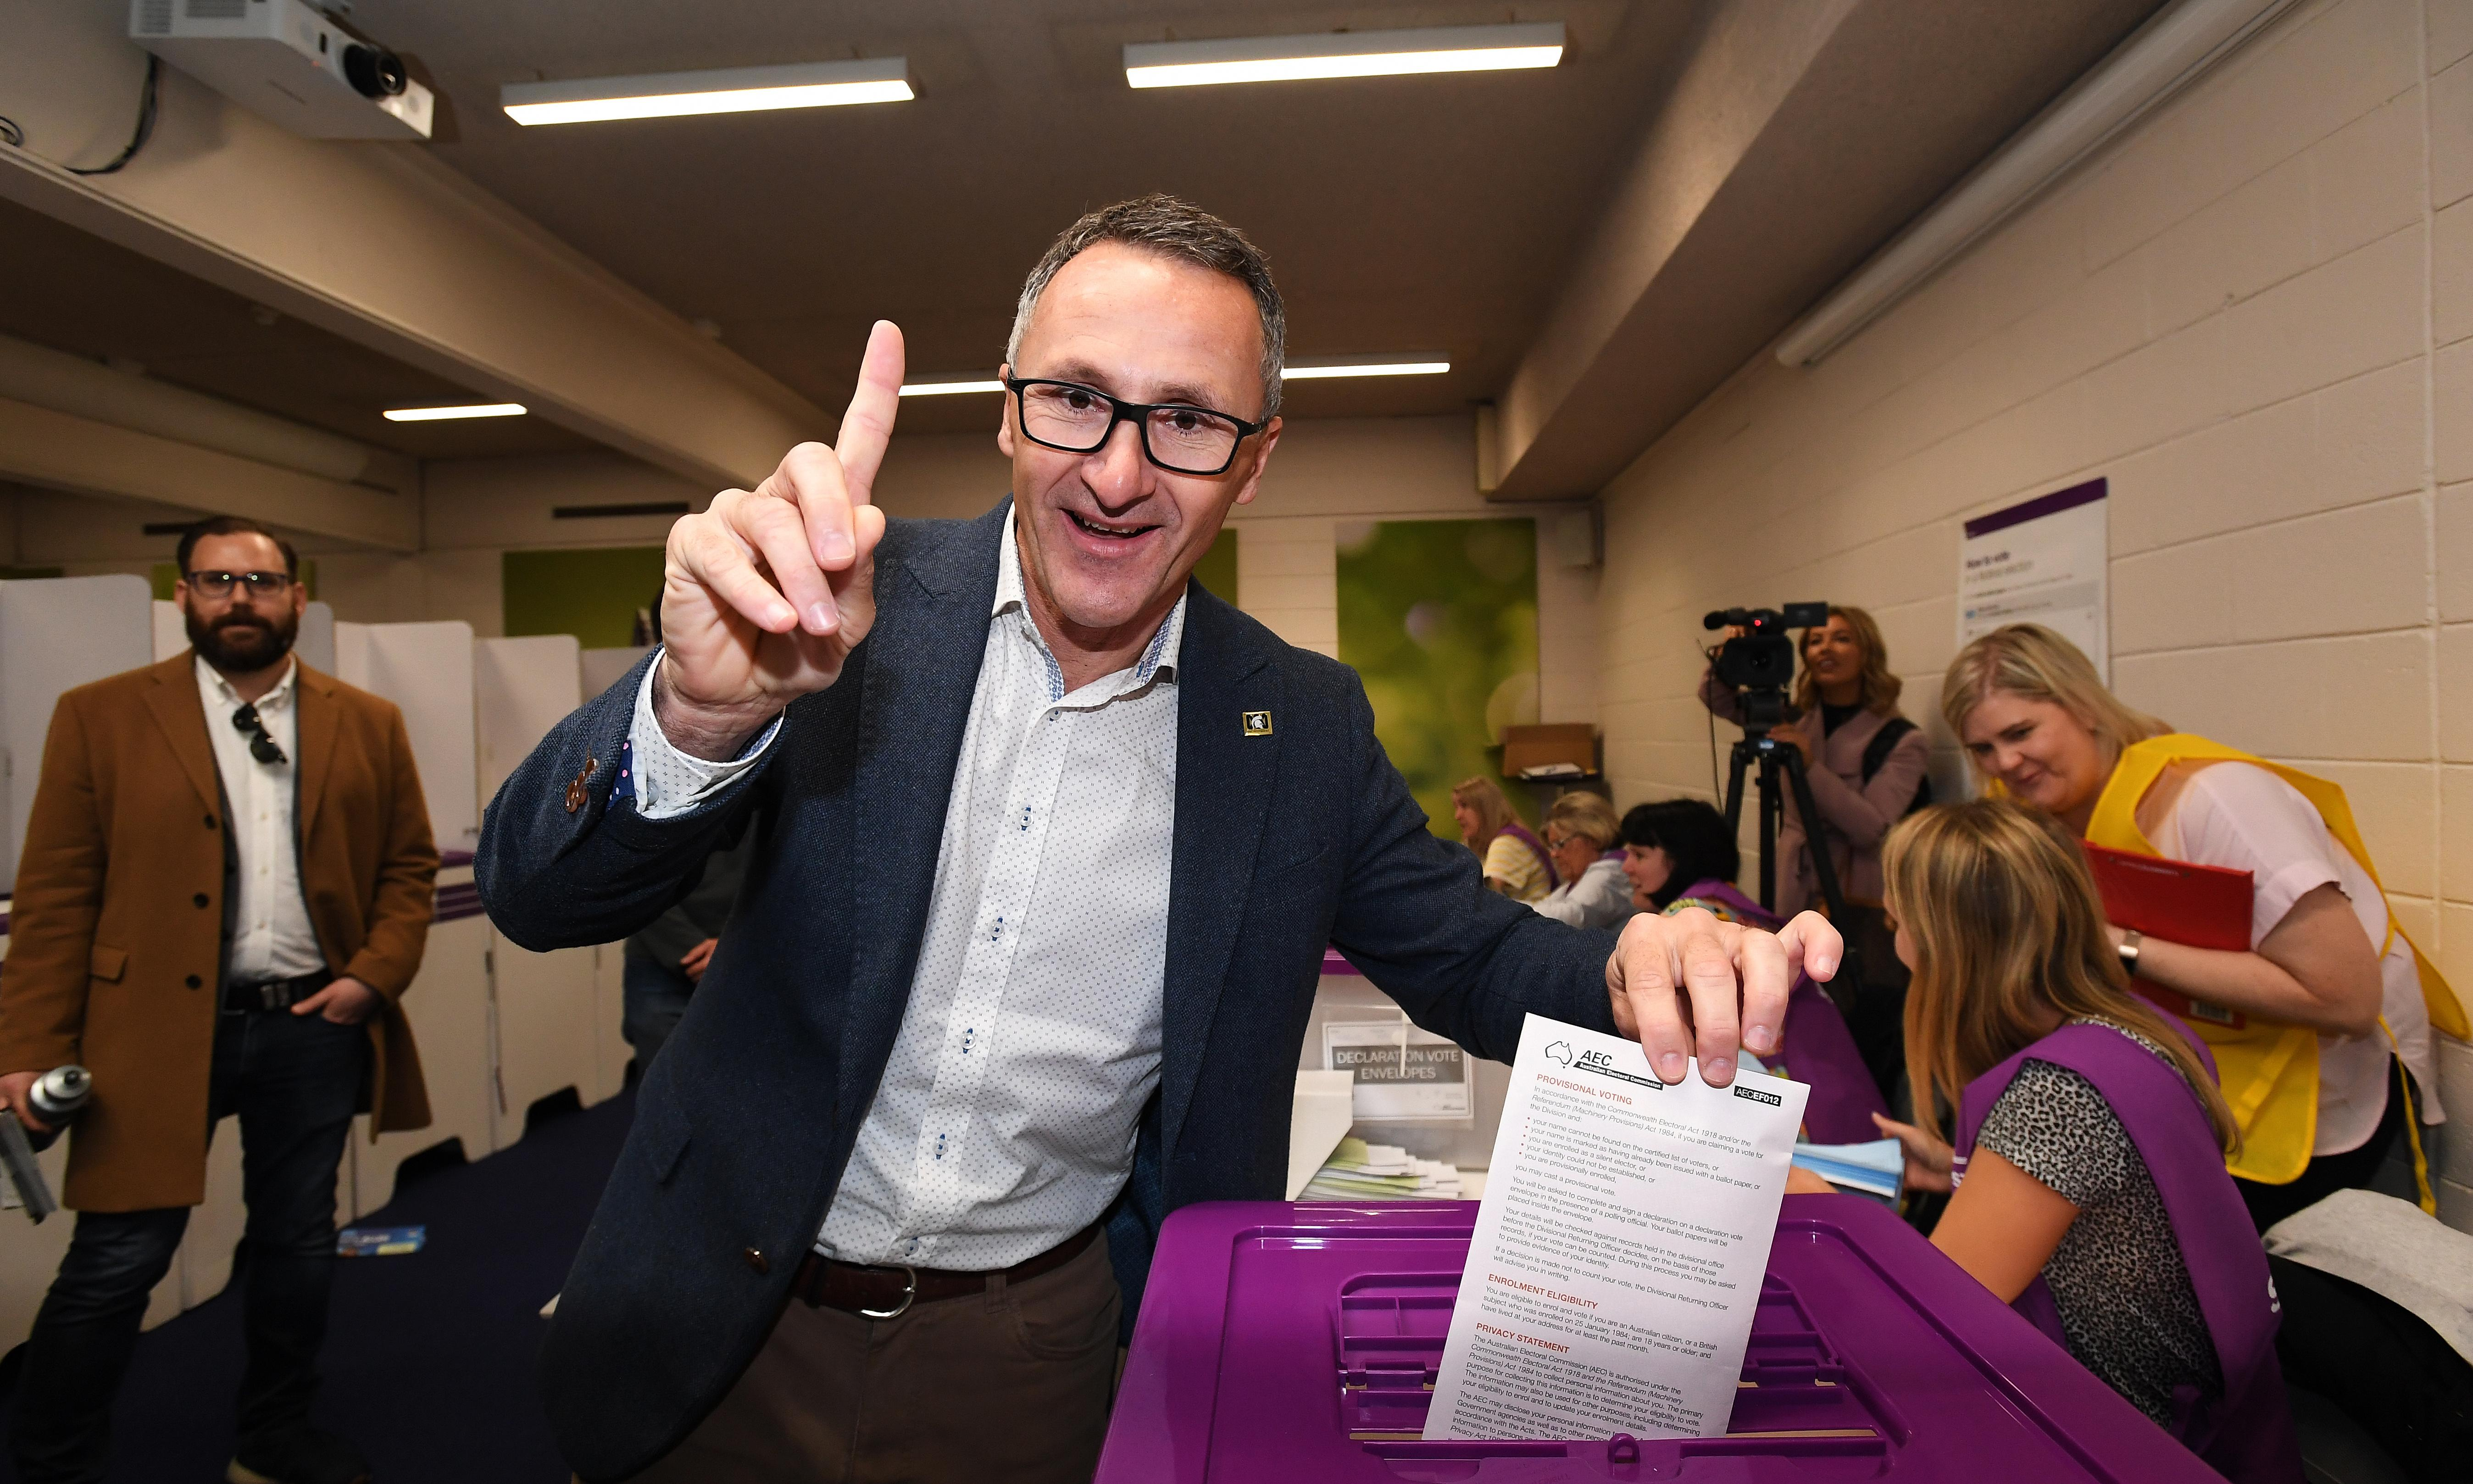 Swing of 2.6% will give the Greens a dominant role on Senate crossbench